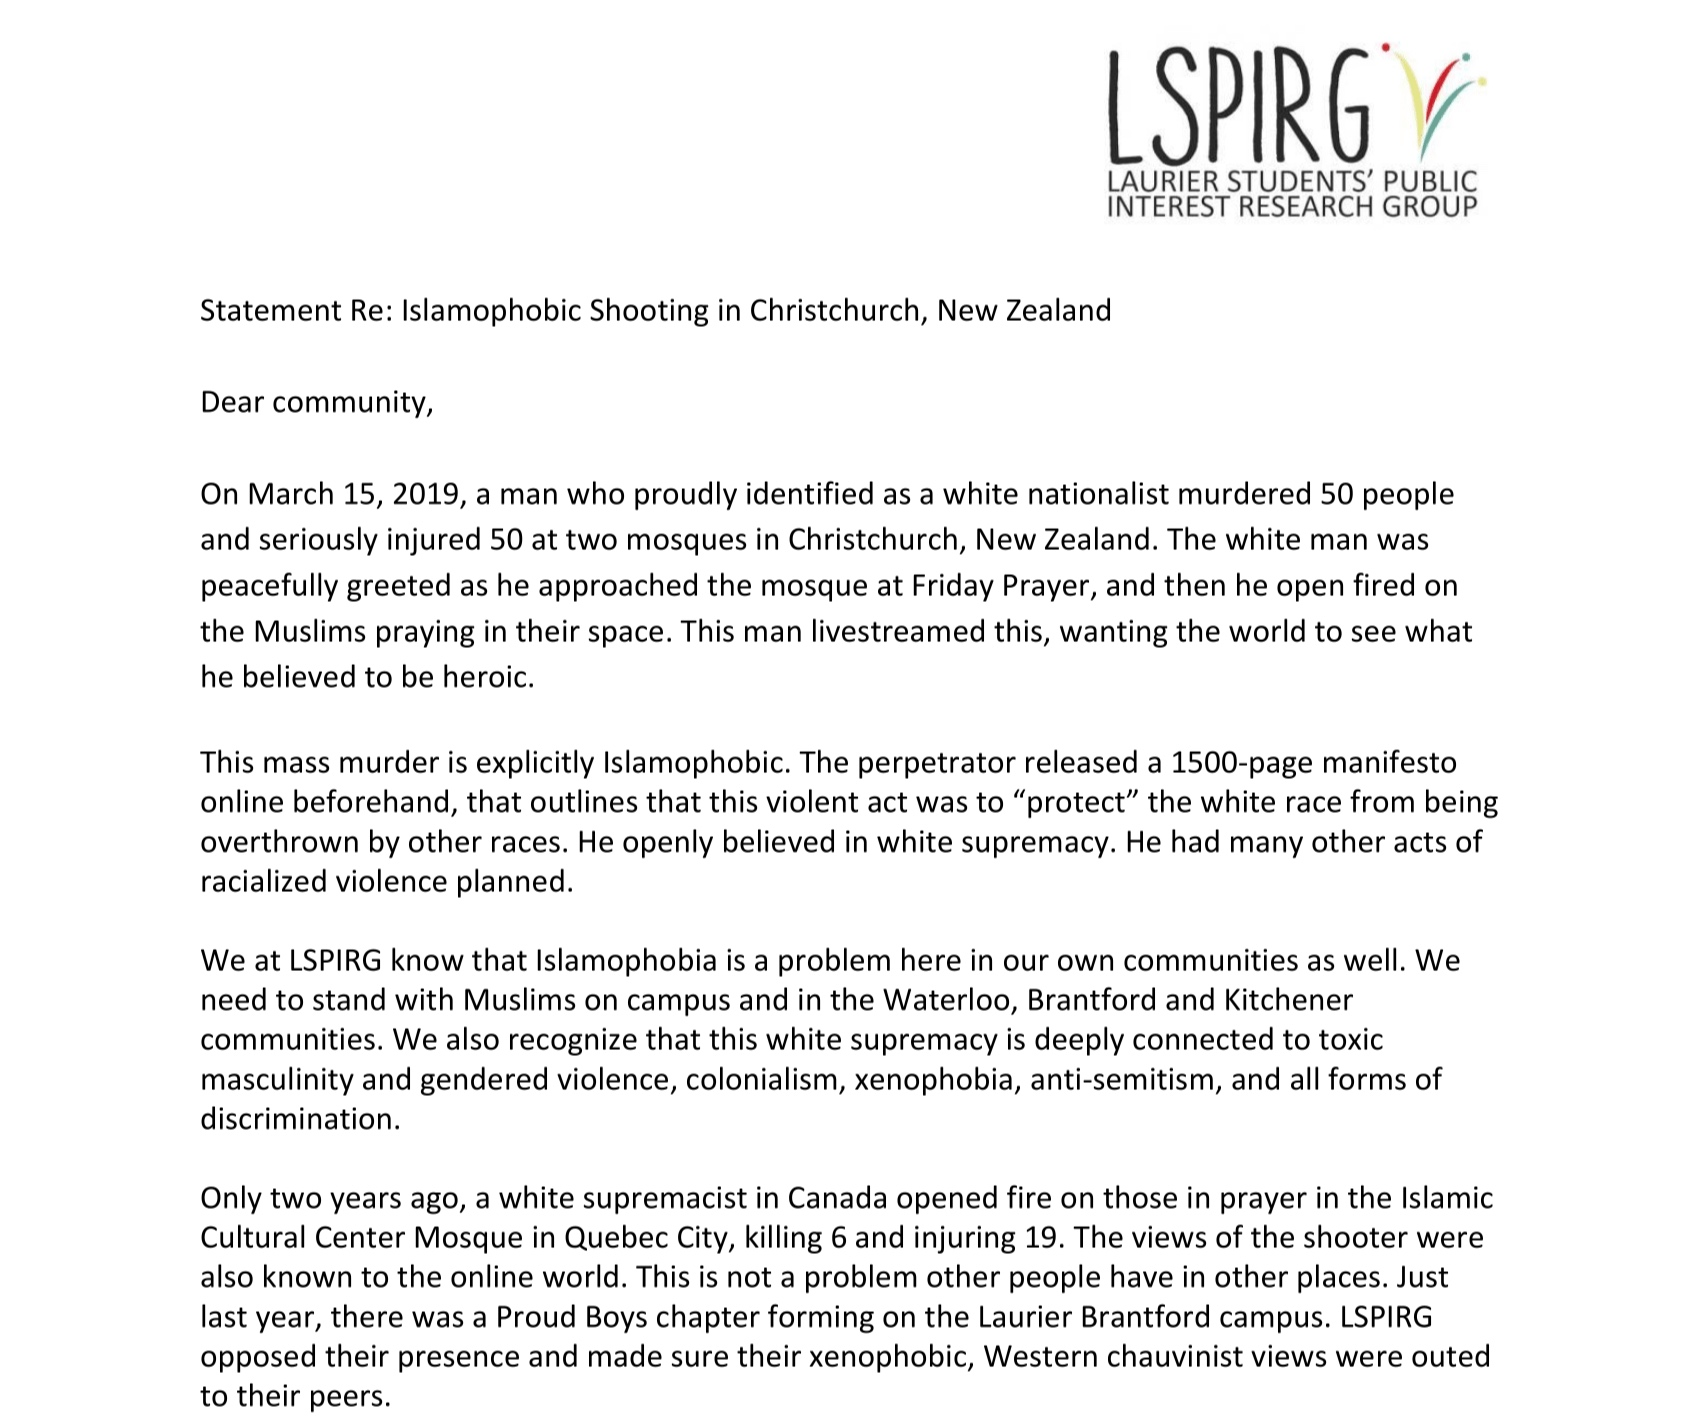 Christchurch+Statement-1.jpg